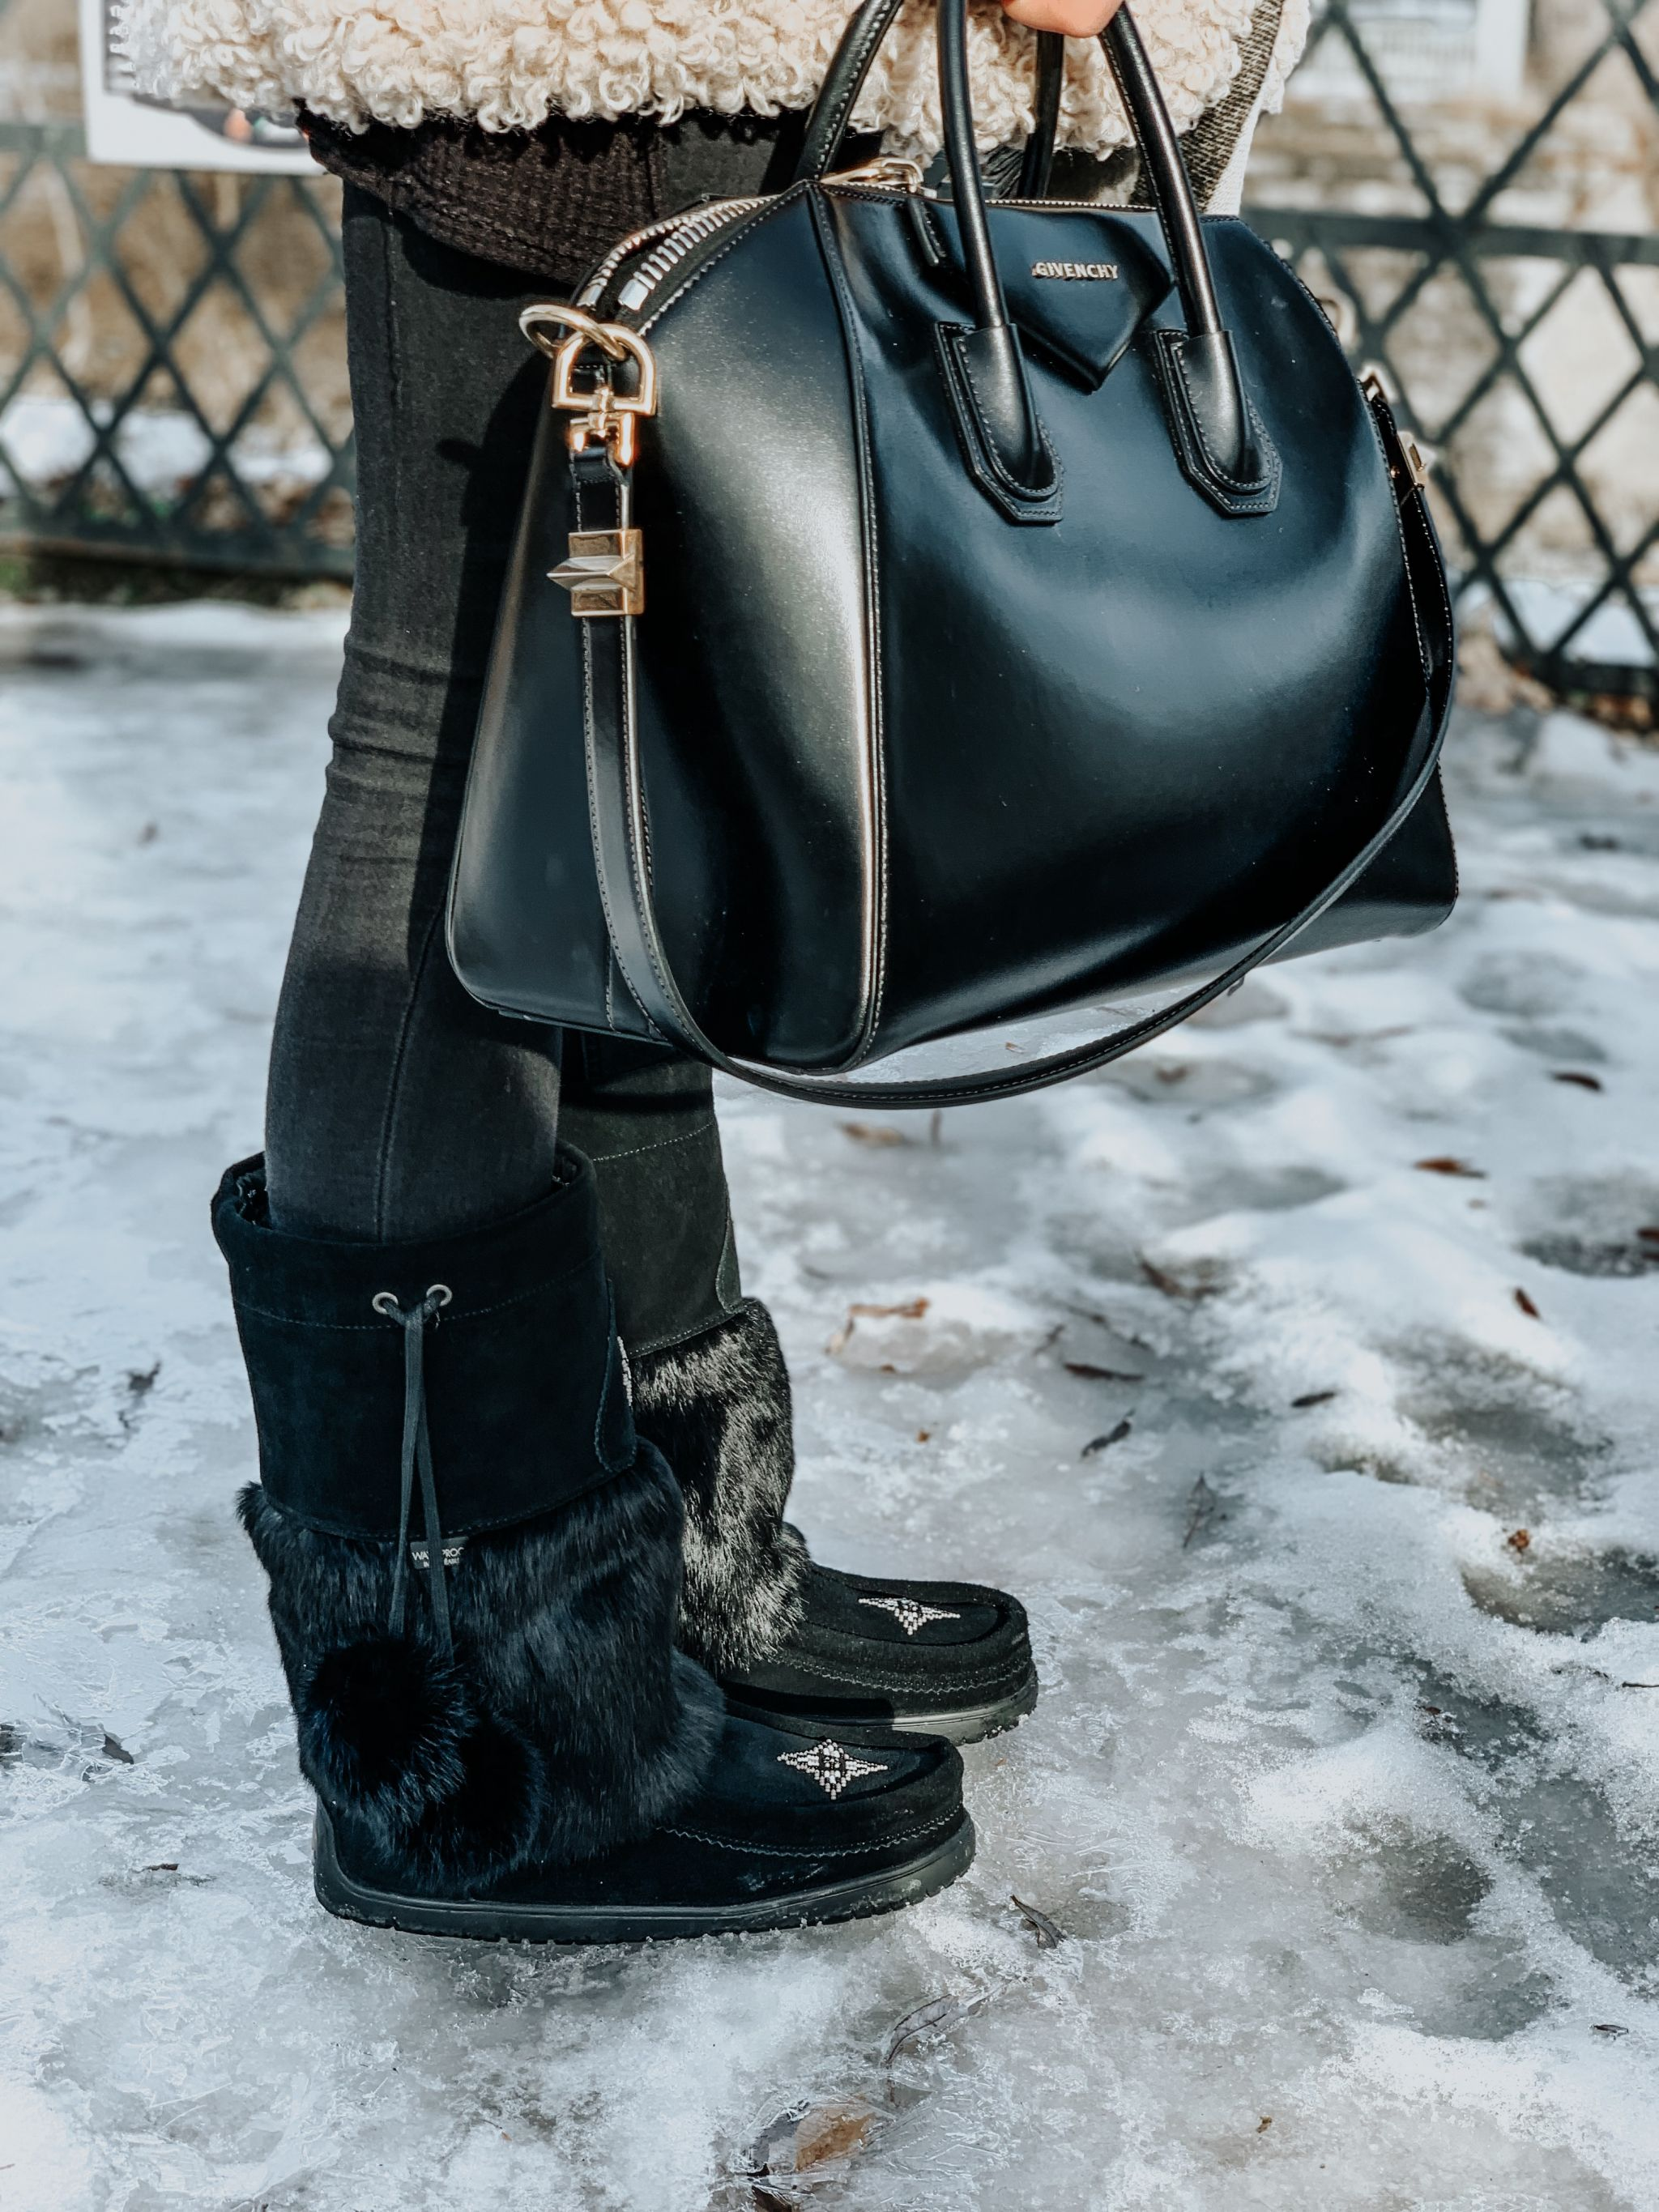 mukluks outfit and chic bag